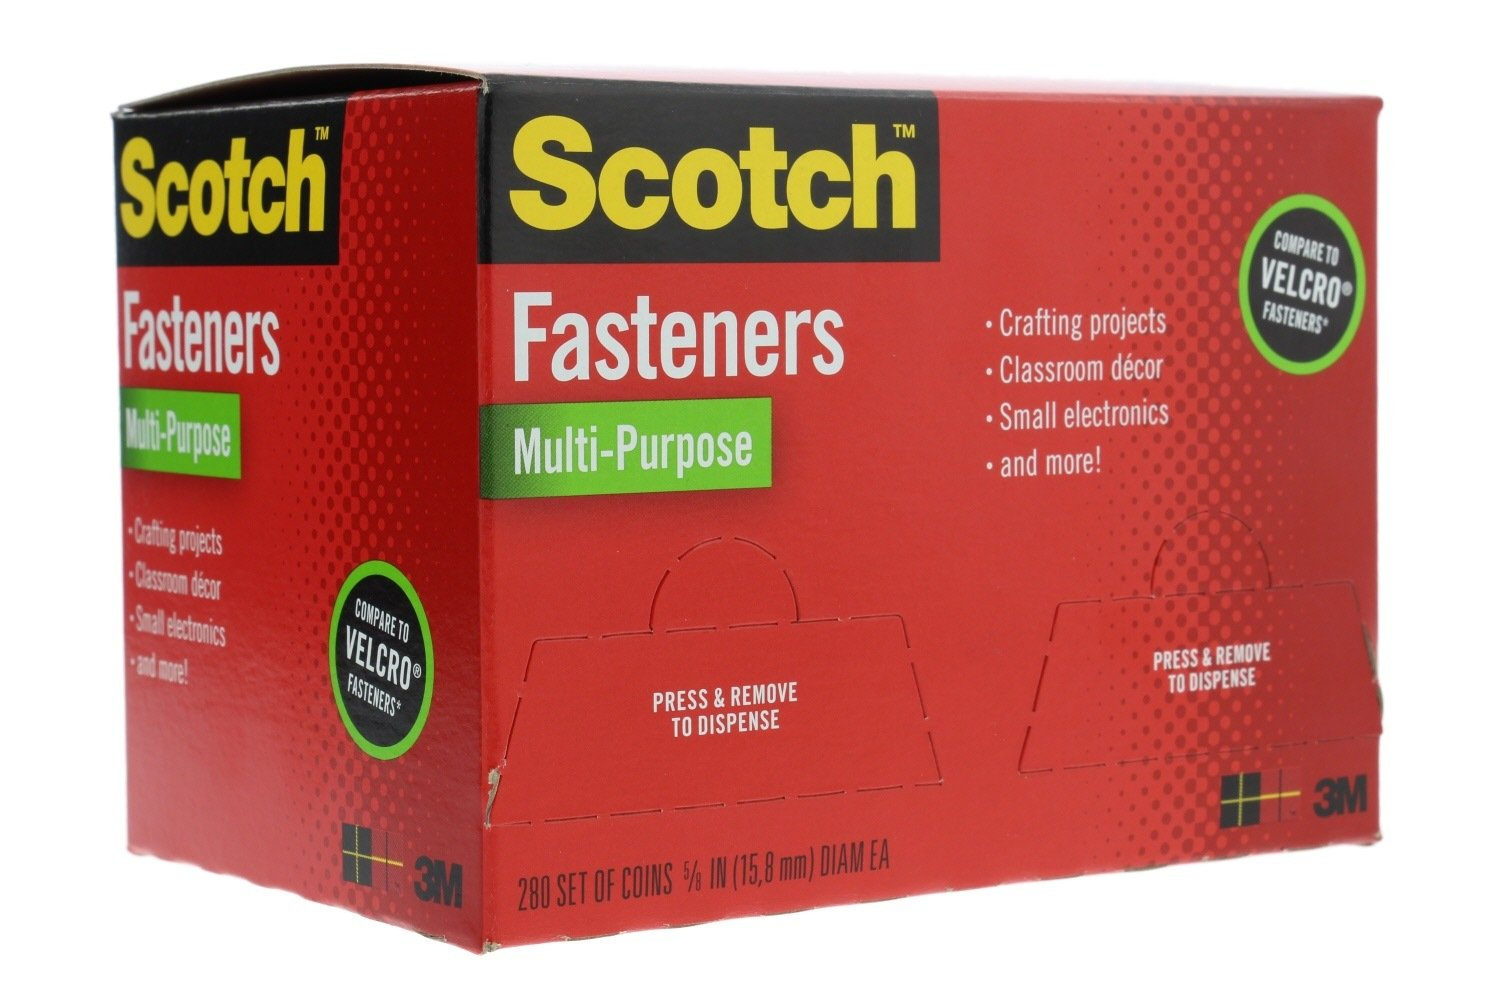 Scotch Multi-Purpose Re-closeable Hook and Loop Fasteners (280 Sets of Dots) - White